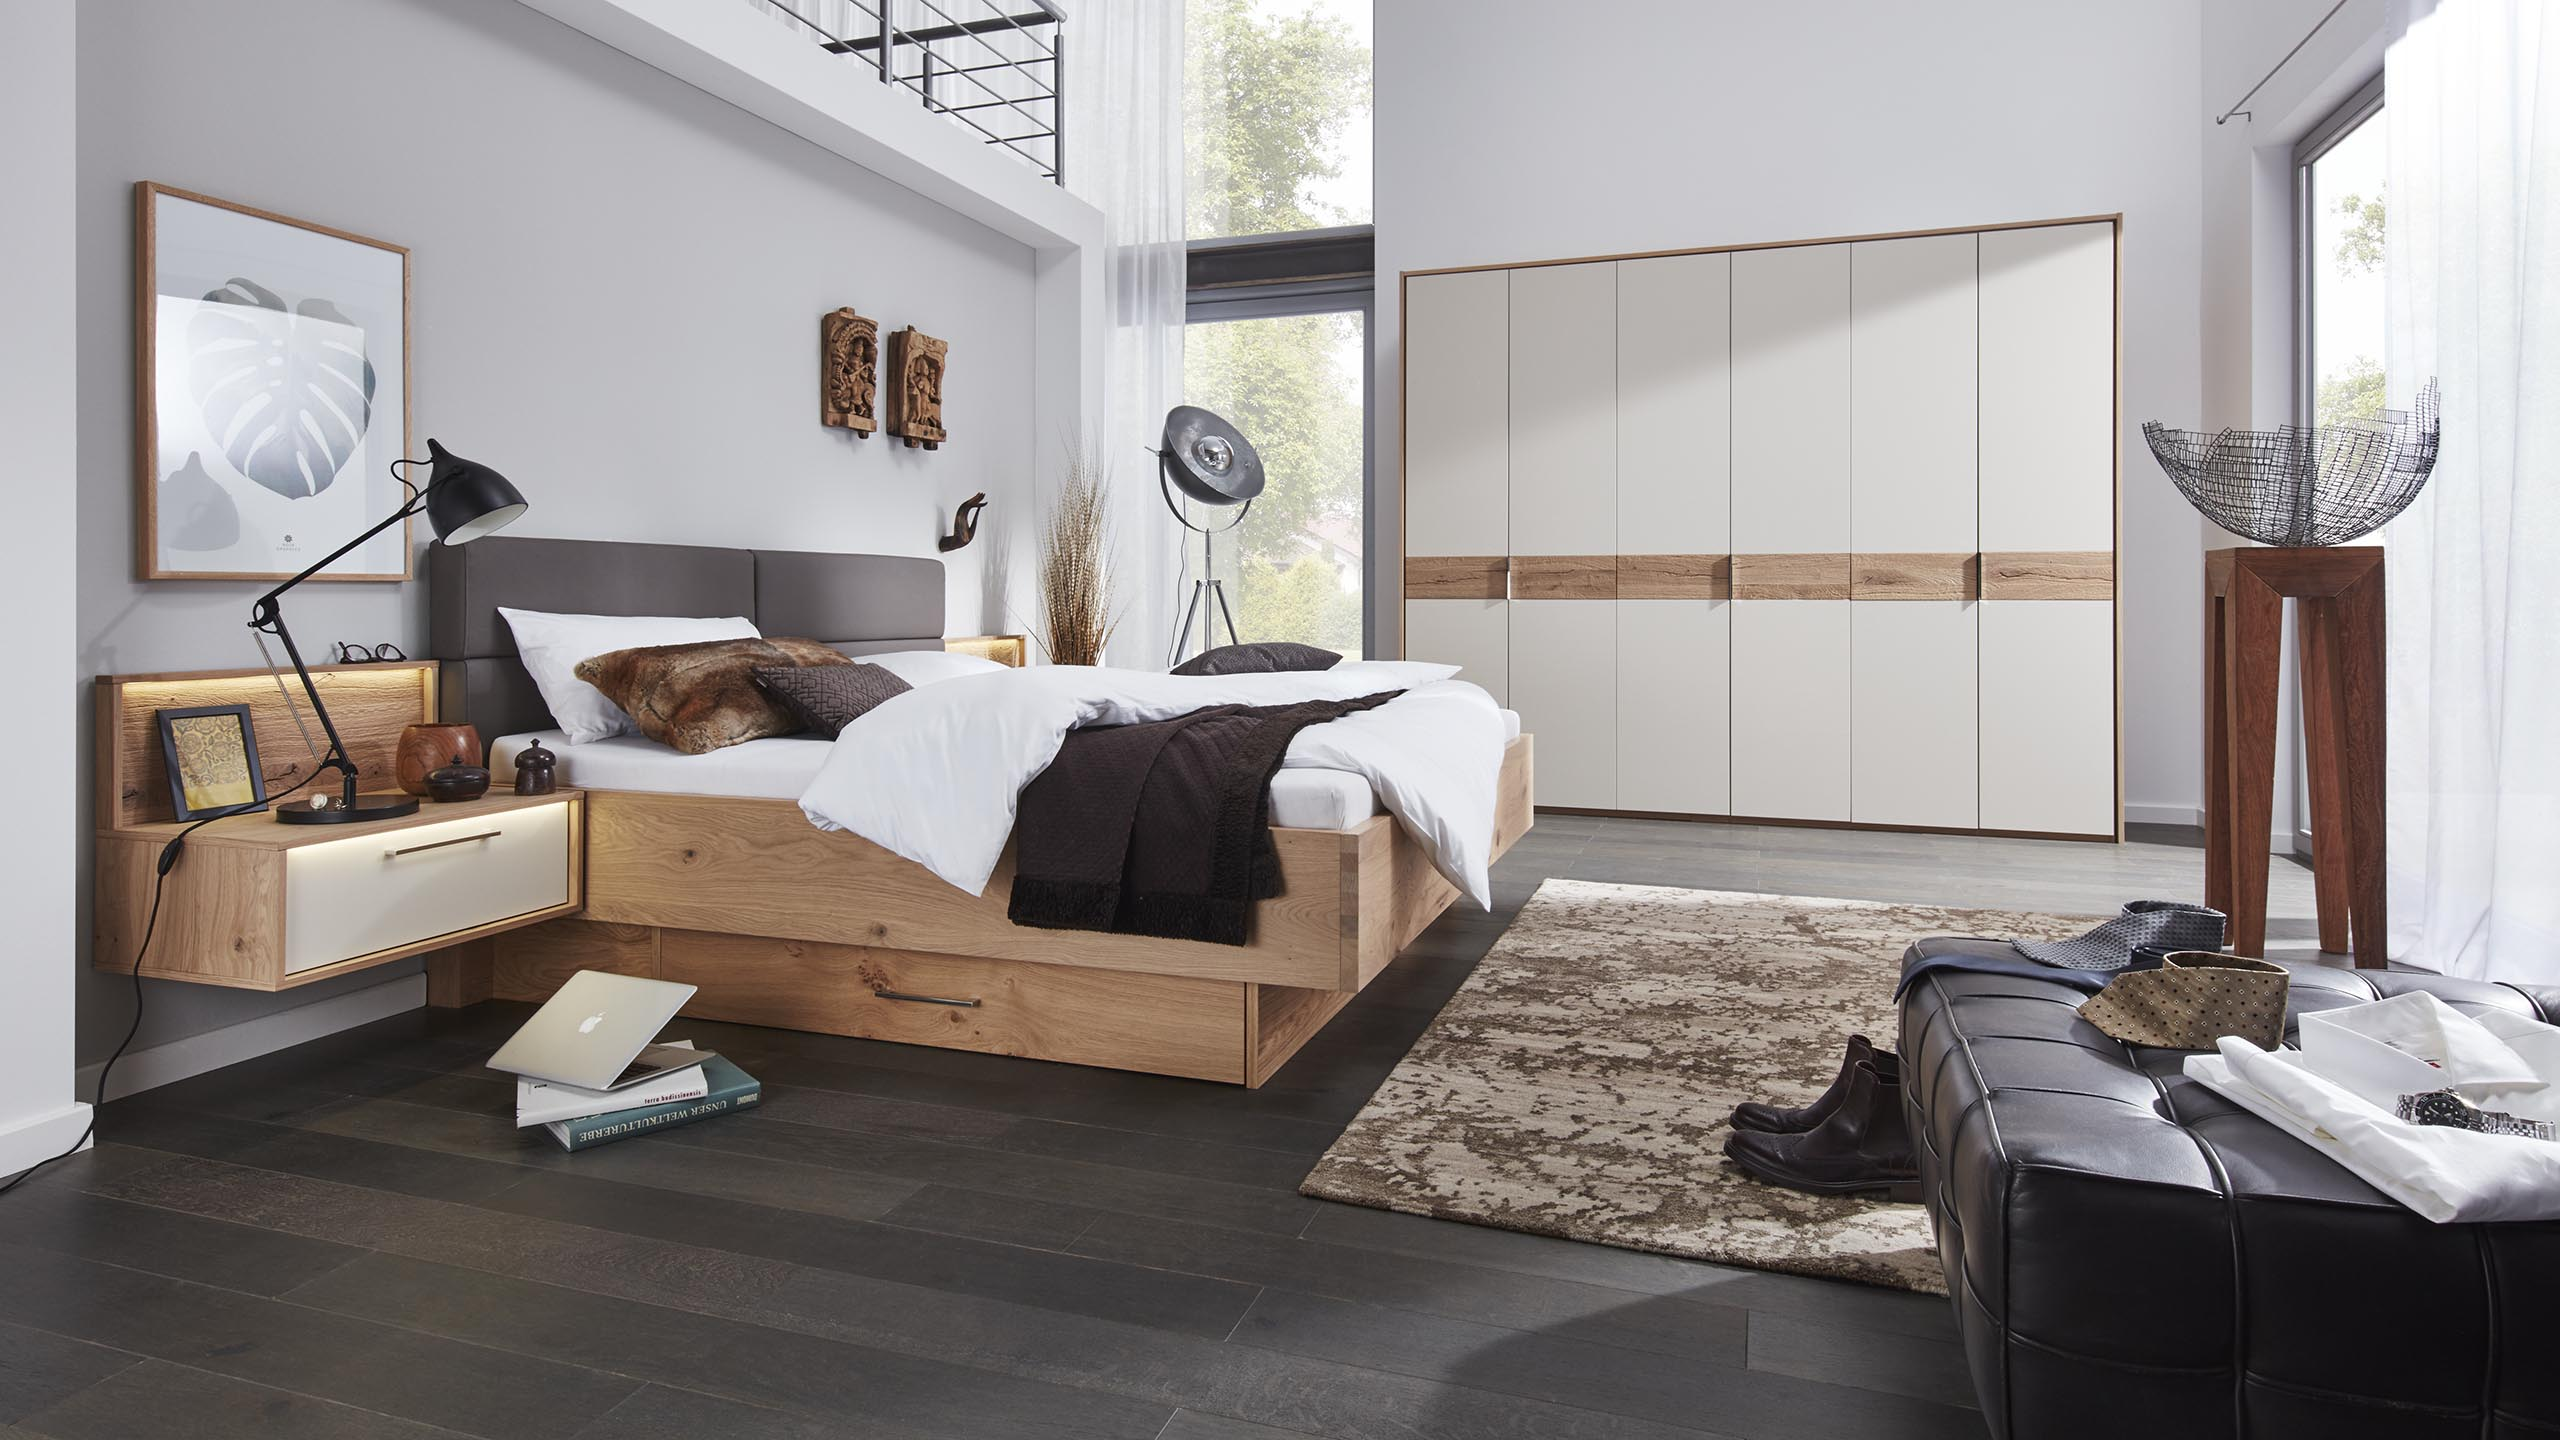 interliving schlafzimmer serie 1002 interliving m bel f r mich gemacht. Black Bedroom Furniture Sets. Home Design Ideas